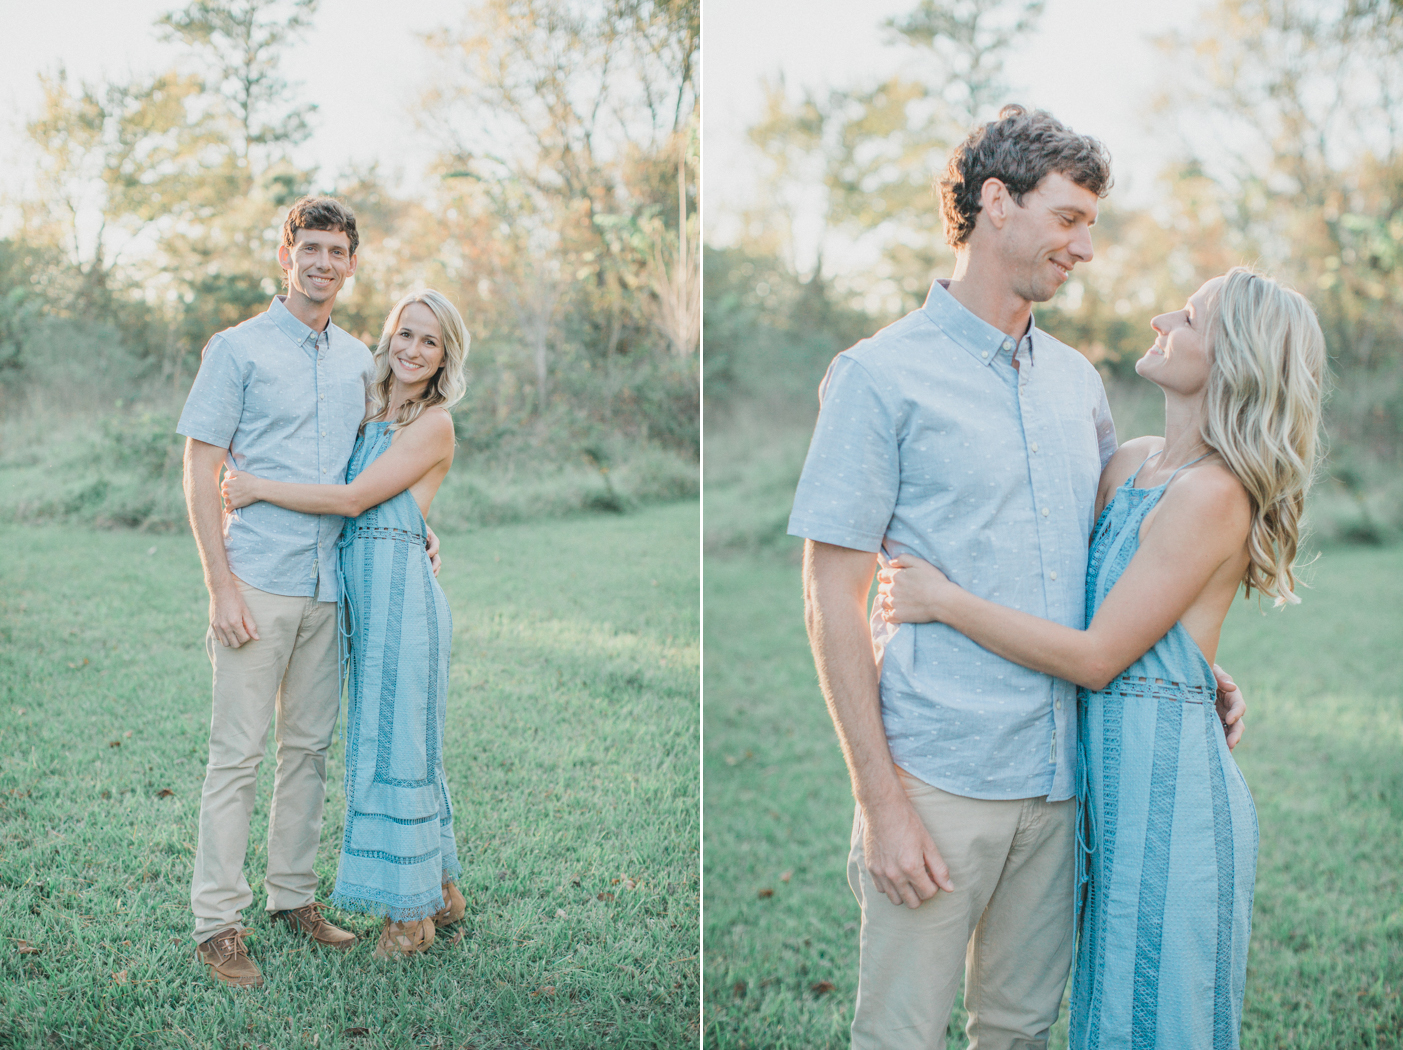 Lindsey Boone Family Session 2017-35 SIDE BY SIDE.jpg